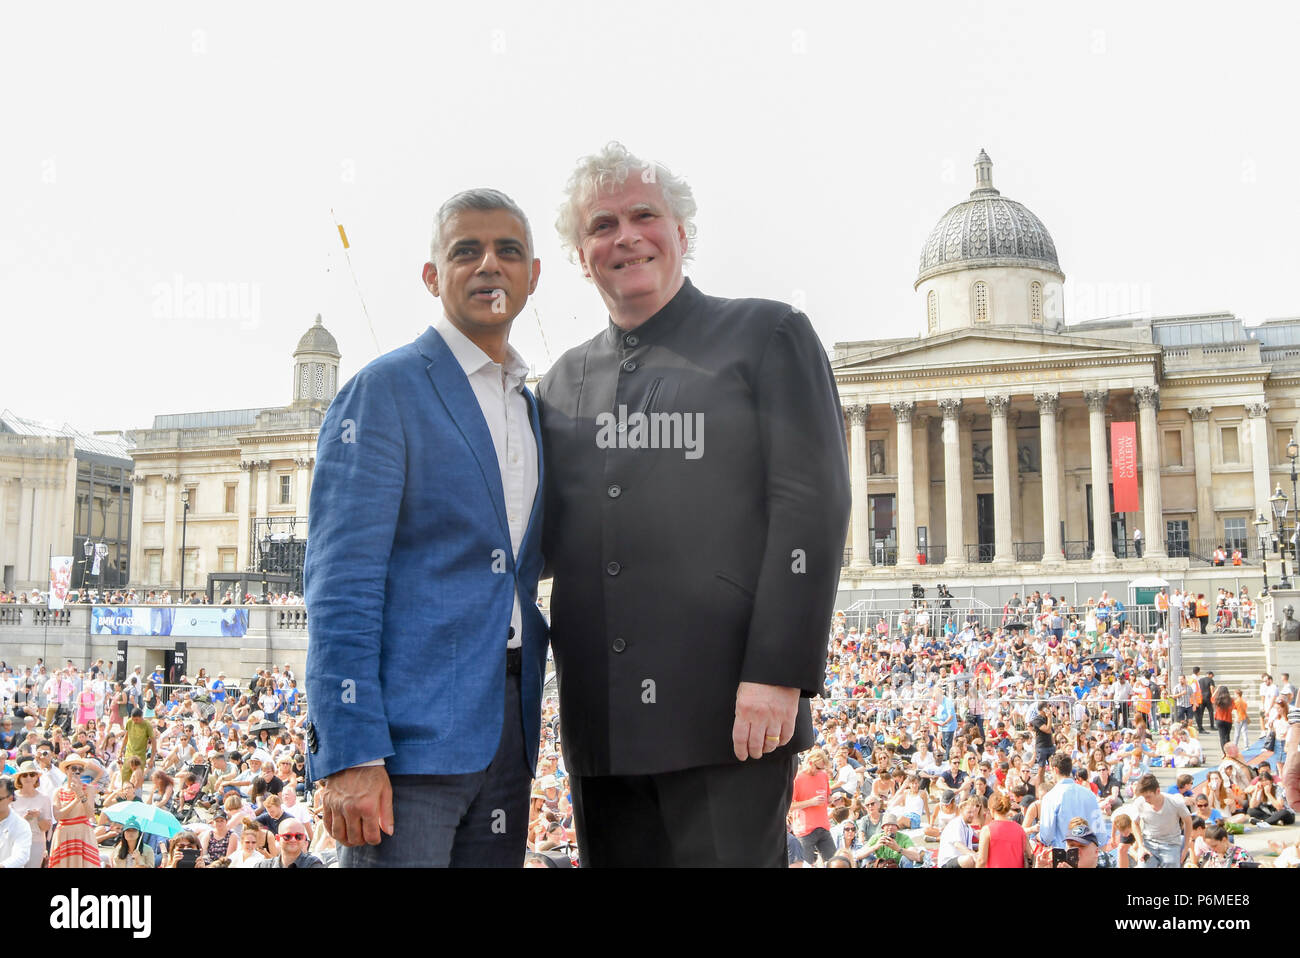 London, UK. 1st July, 2018. Photocall of Sadiq Khan,Sir Simon Rattle at the BMW Classics + live streamed on YouTube in Trafalgar Square on a hot weather in London, UK on July 1st 2018. Credit: Picture Capital/Alamy Live News - Stock Image